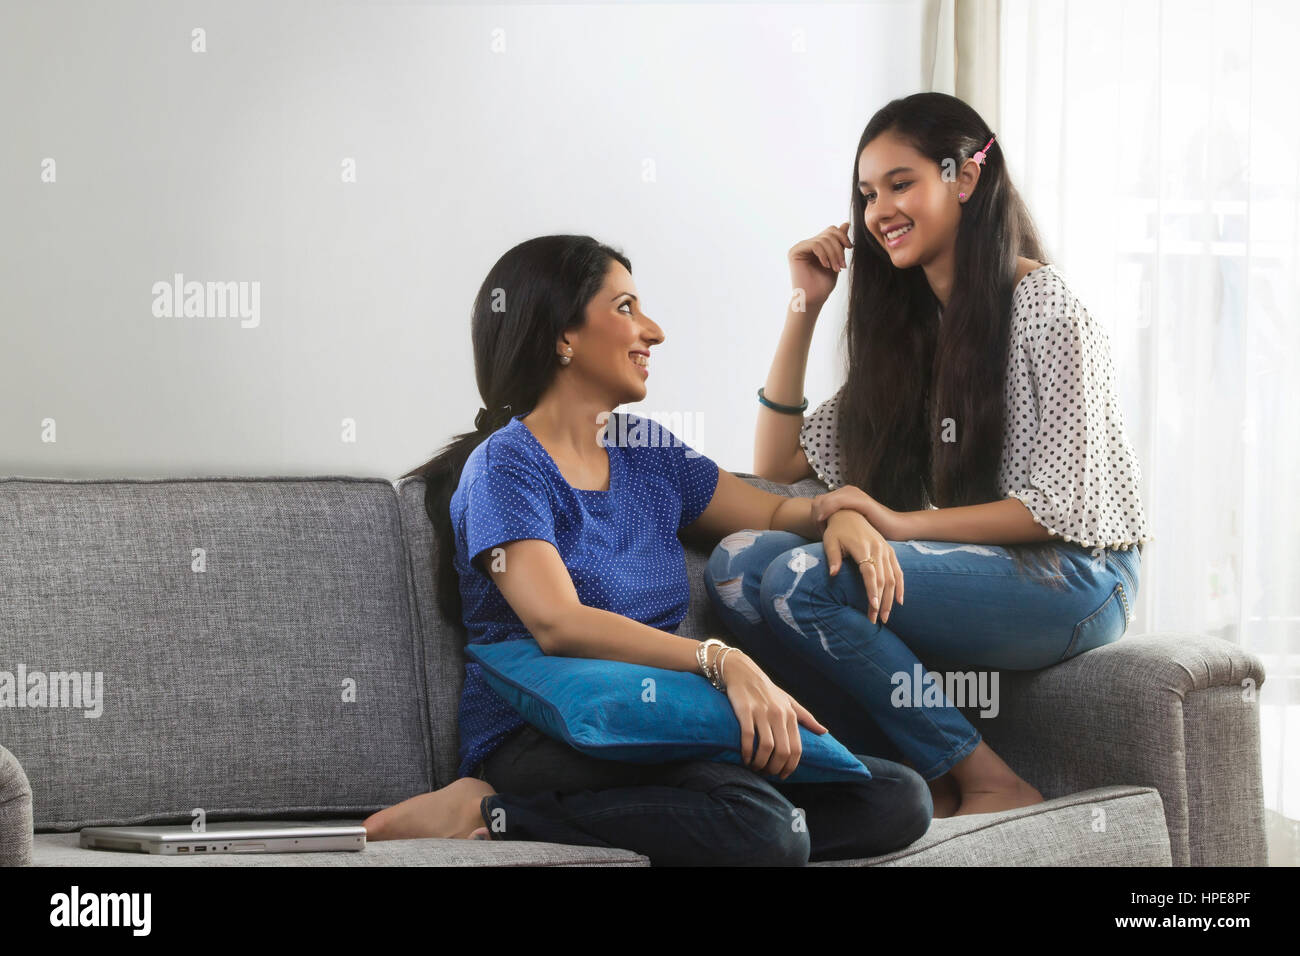 Smiling mother and teenage daughter conversing in living room - Stock Image